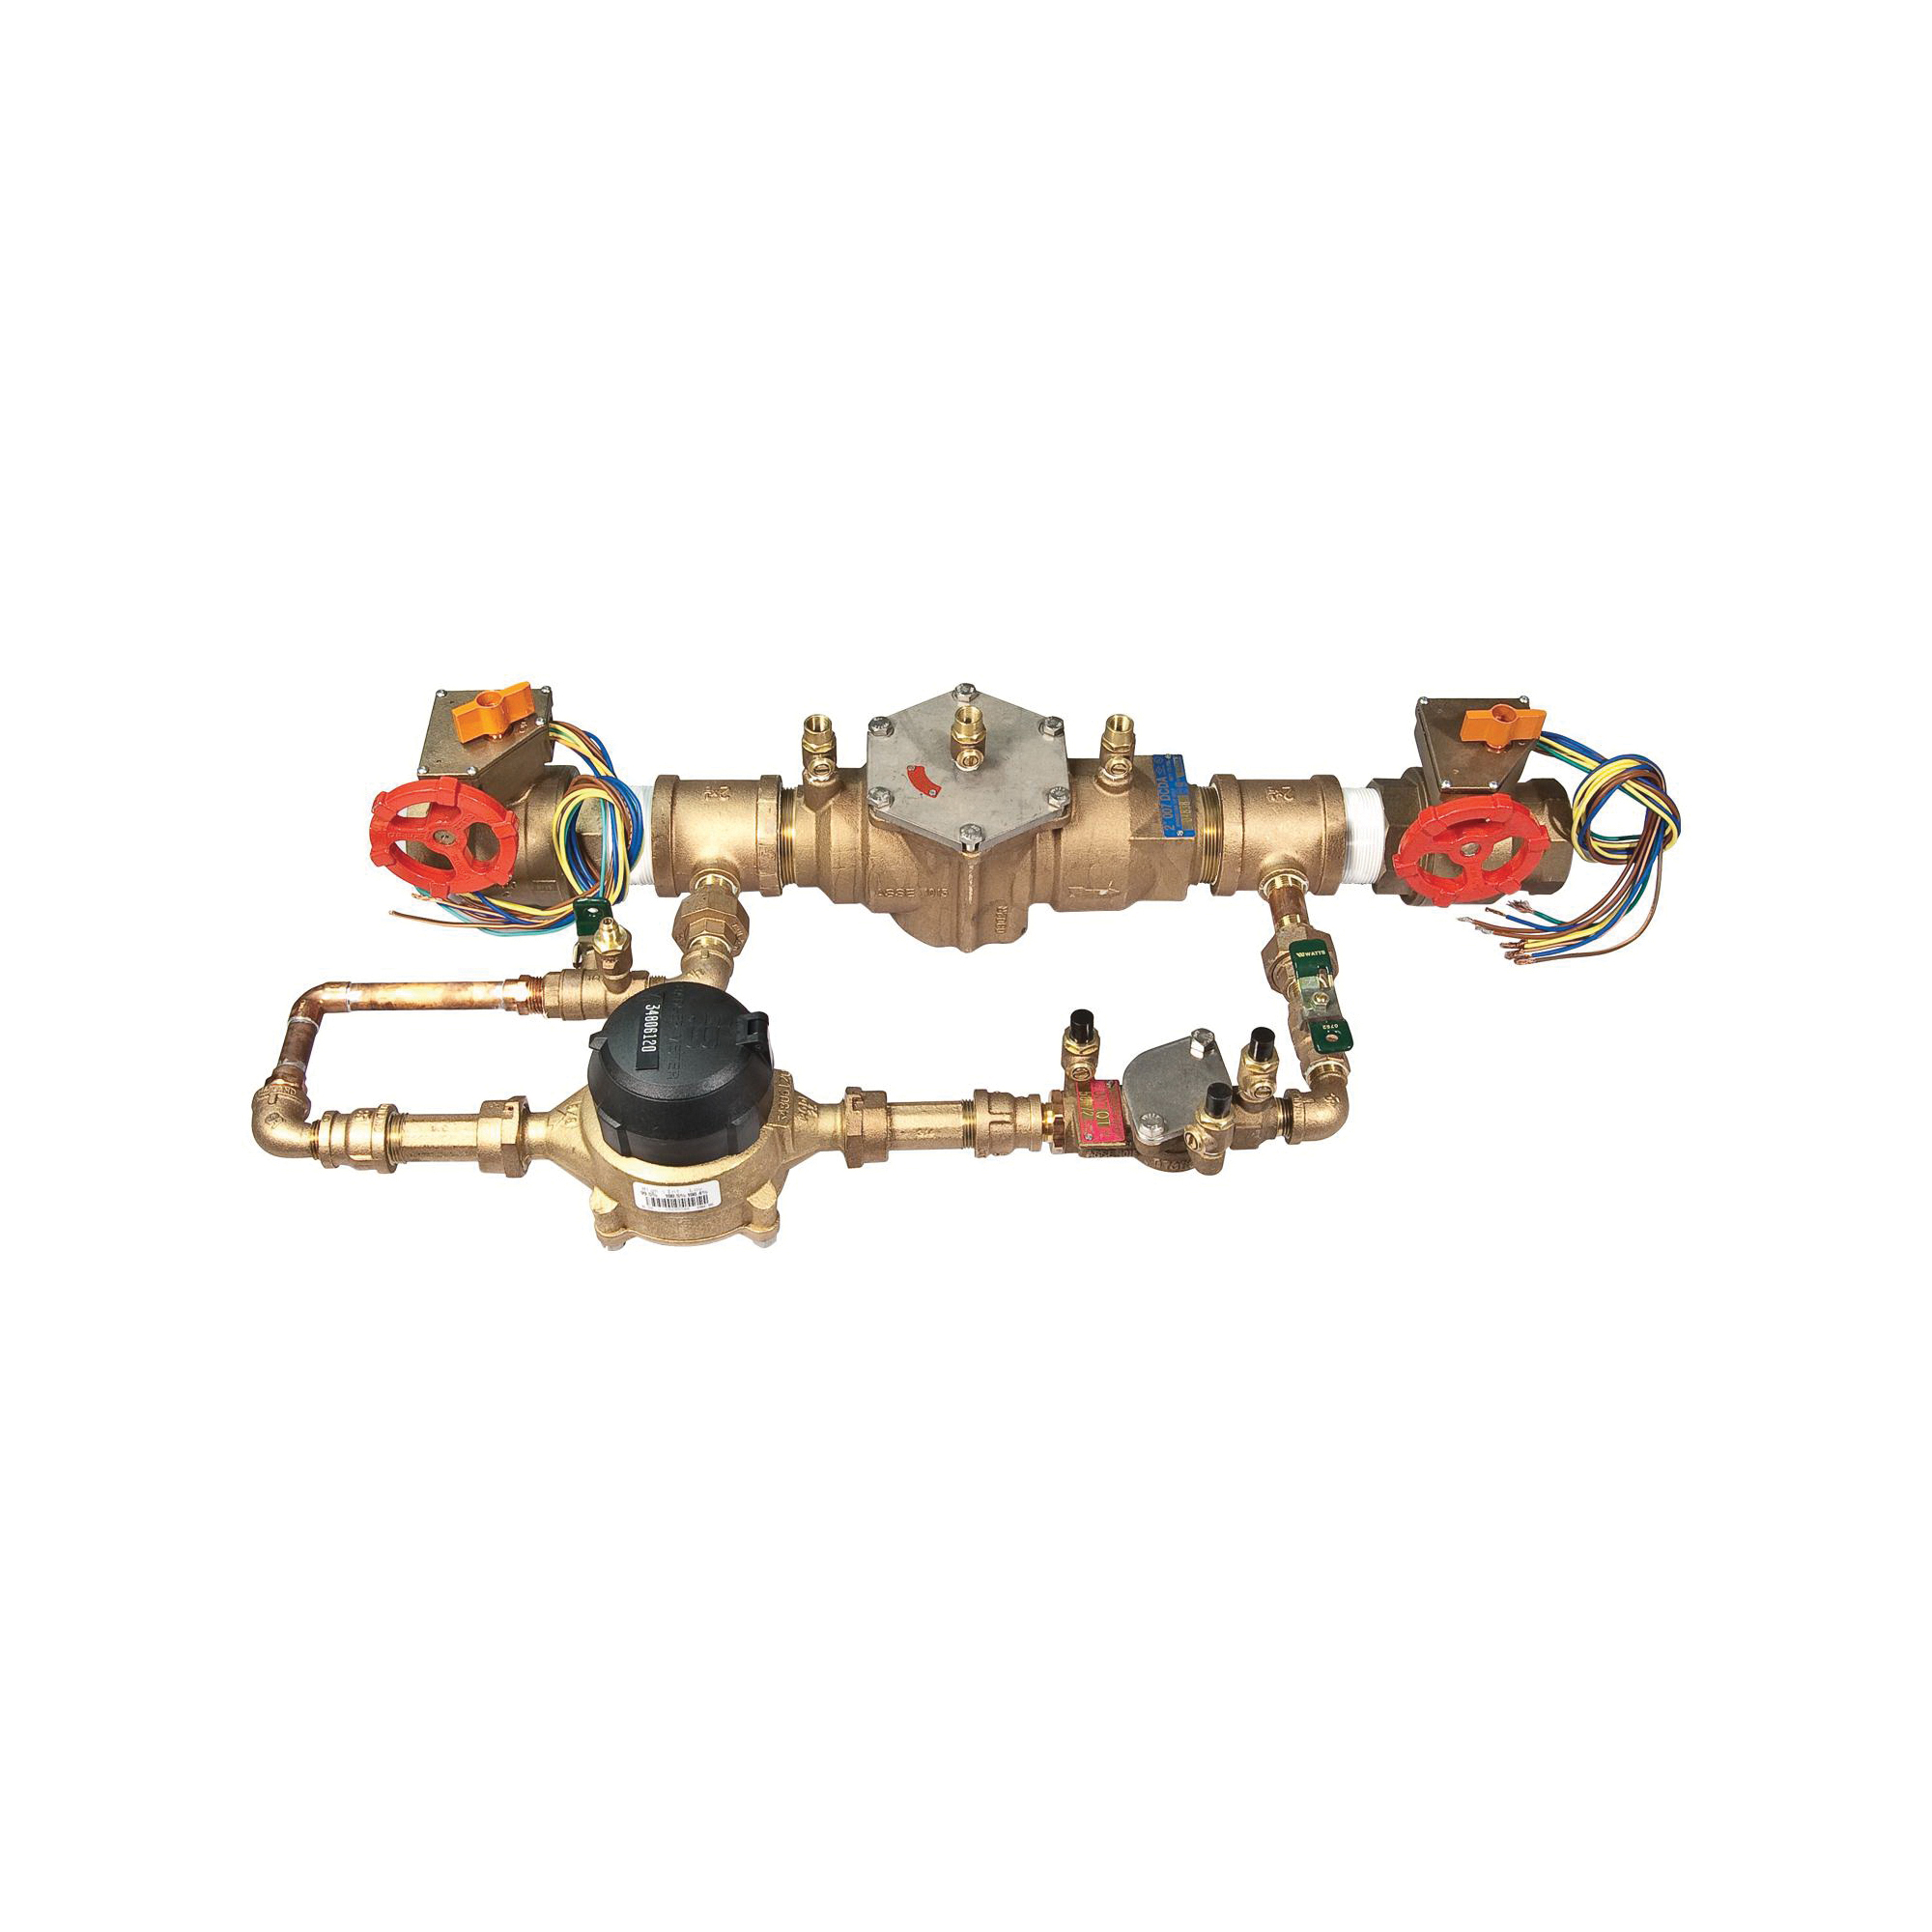 WATTS® 0387129 909 Reduced Pressure Zone Assembly, 1 in, Quarter-Turn Ball Valve, Bronze Body